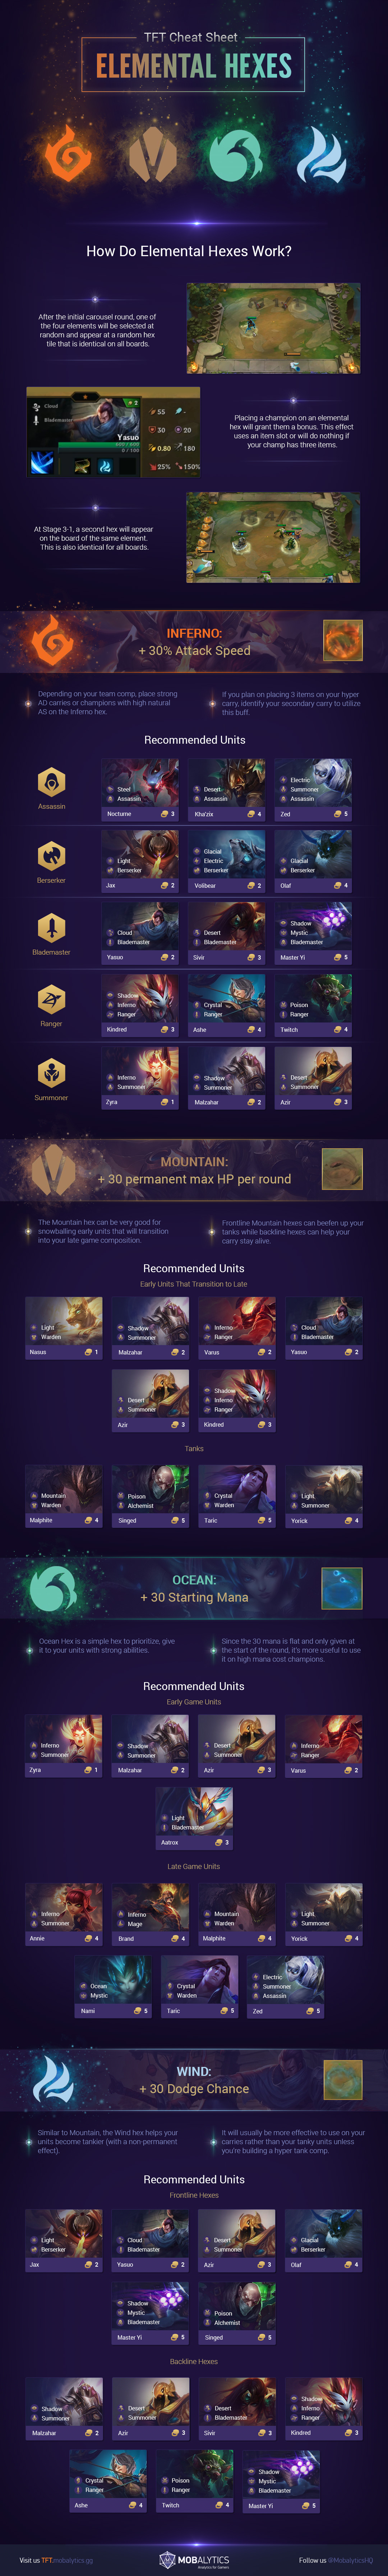 Elemental Hex infographic